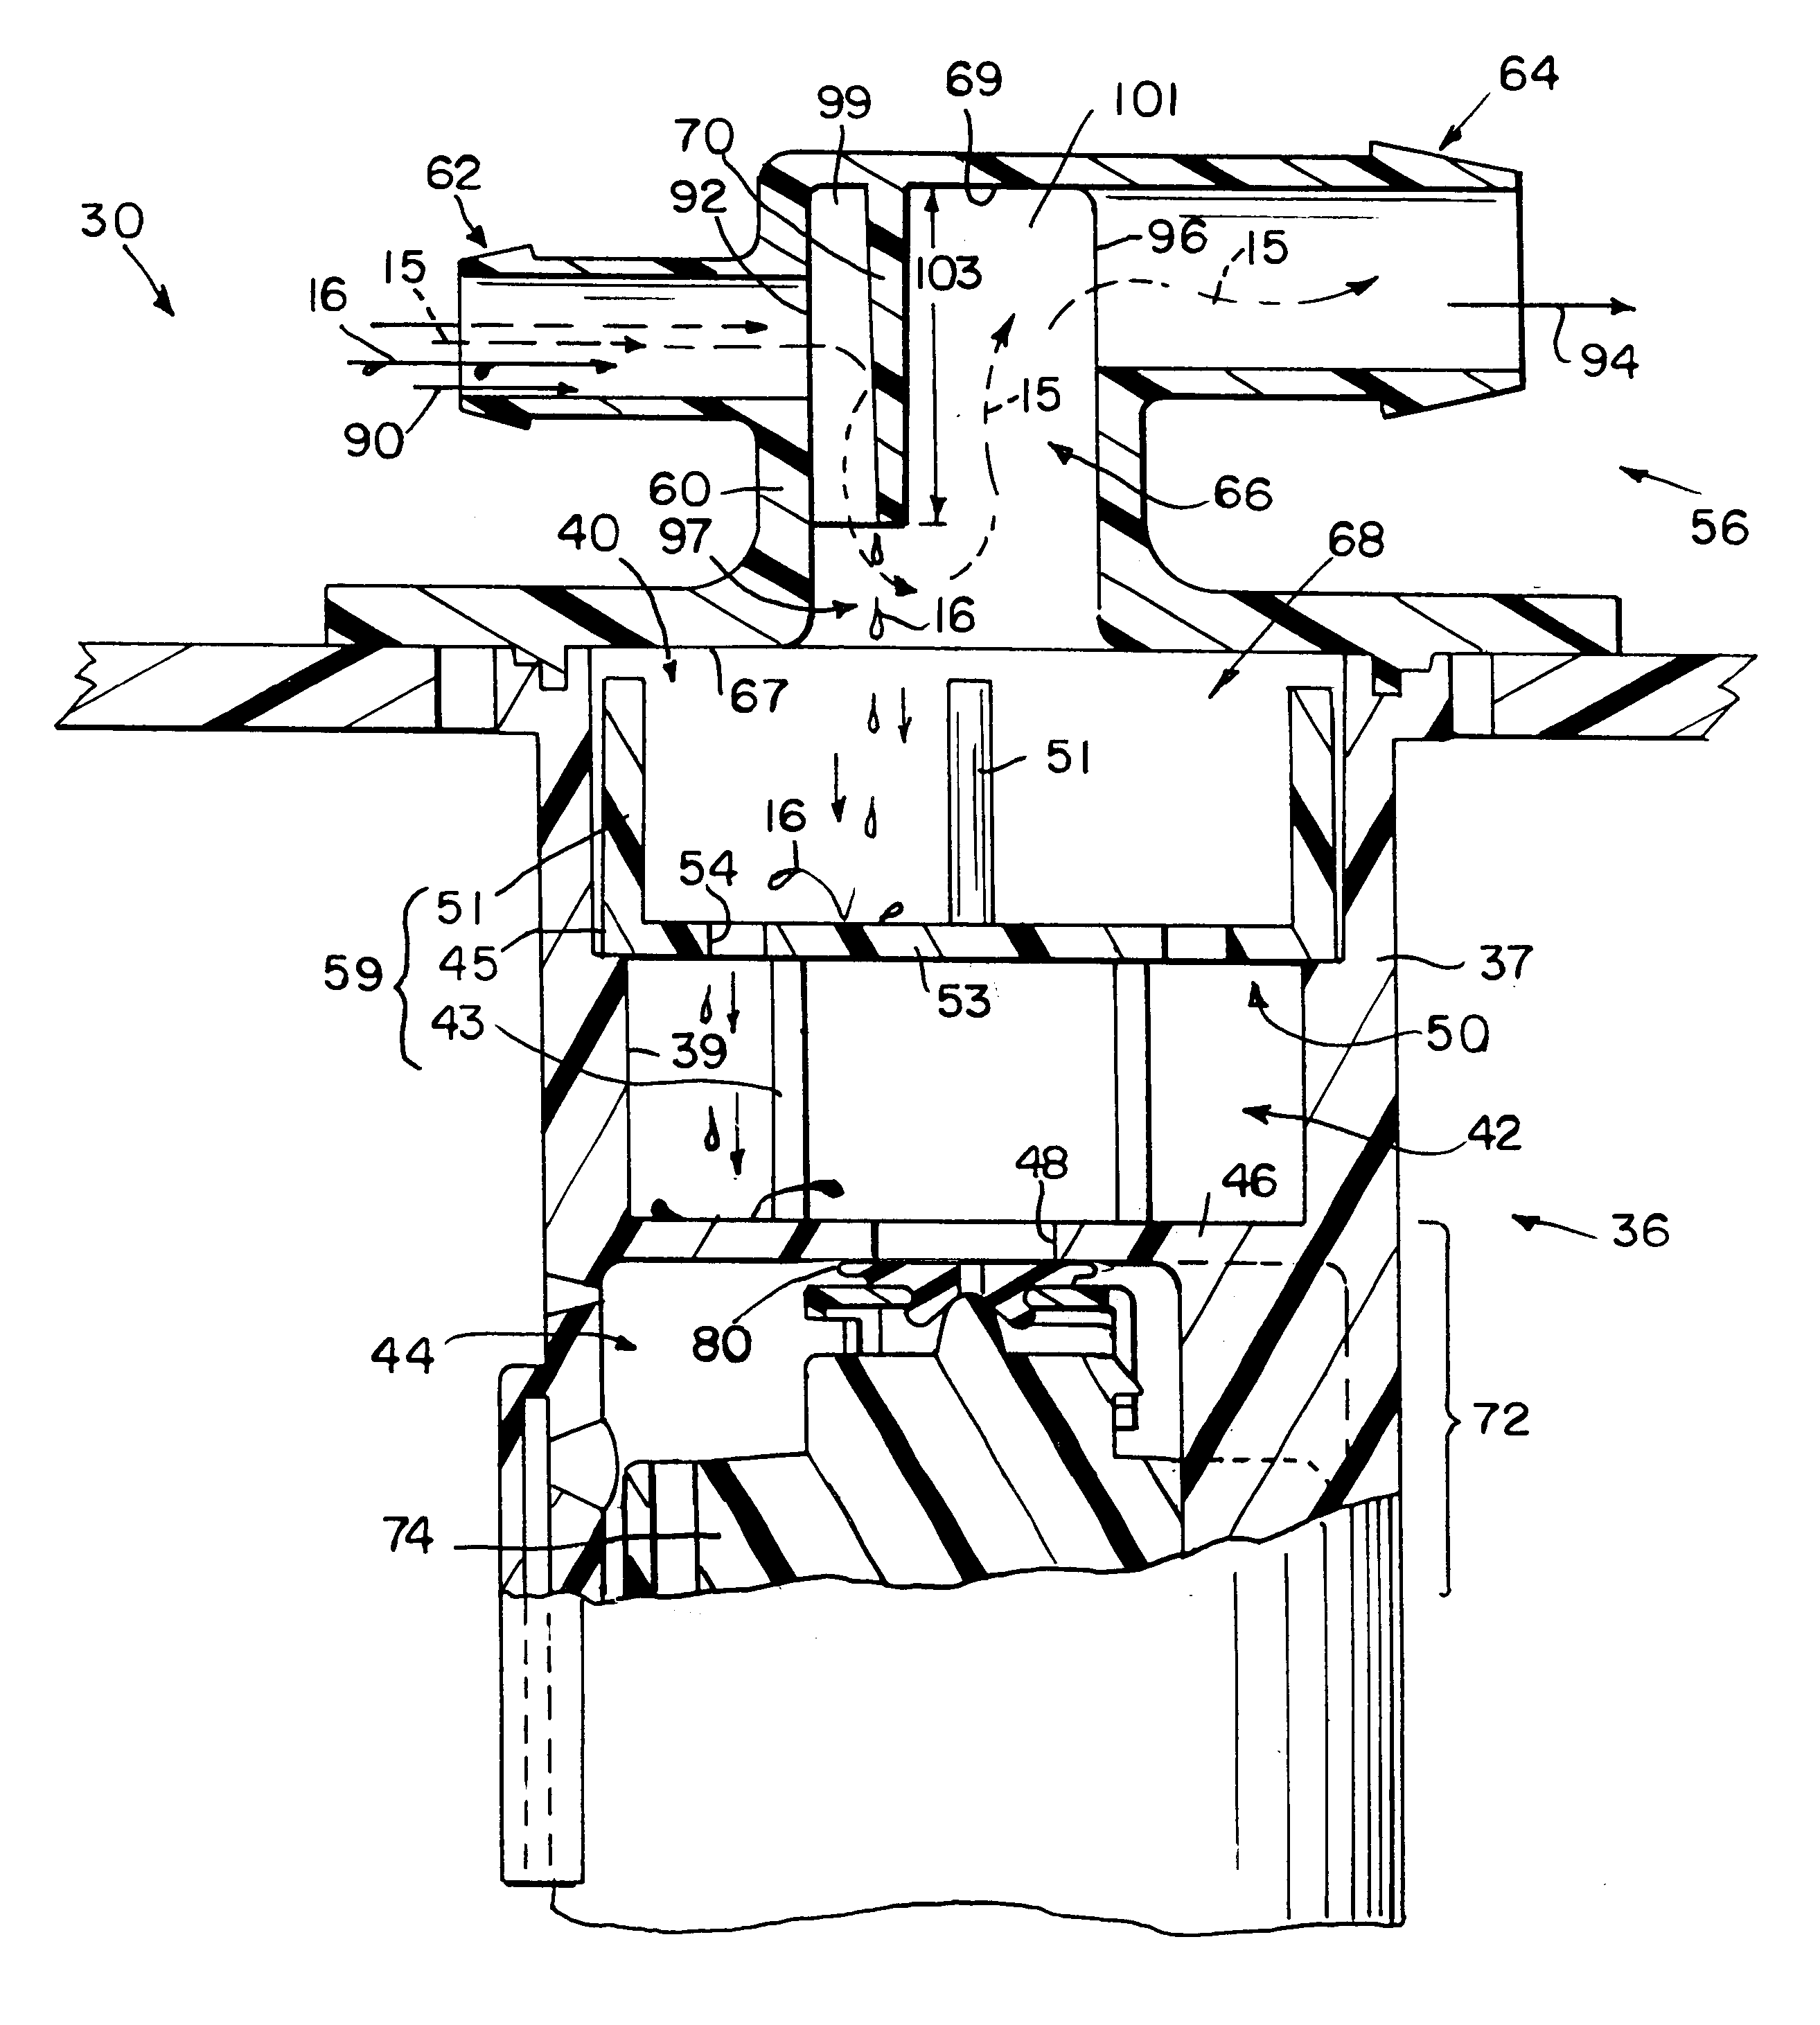 patent us6405747 - fuel tank vent valve with liquid carryover filter